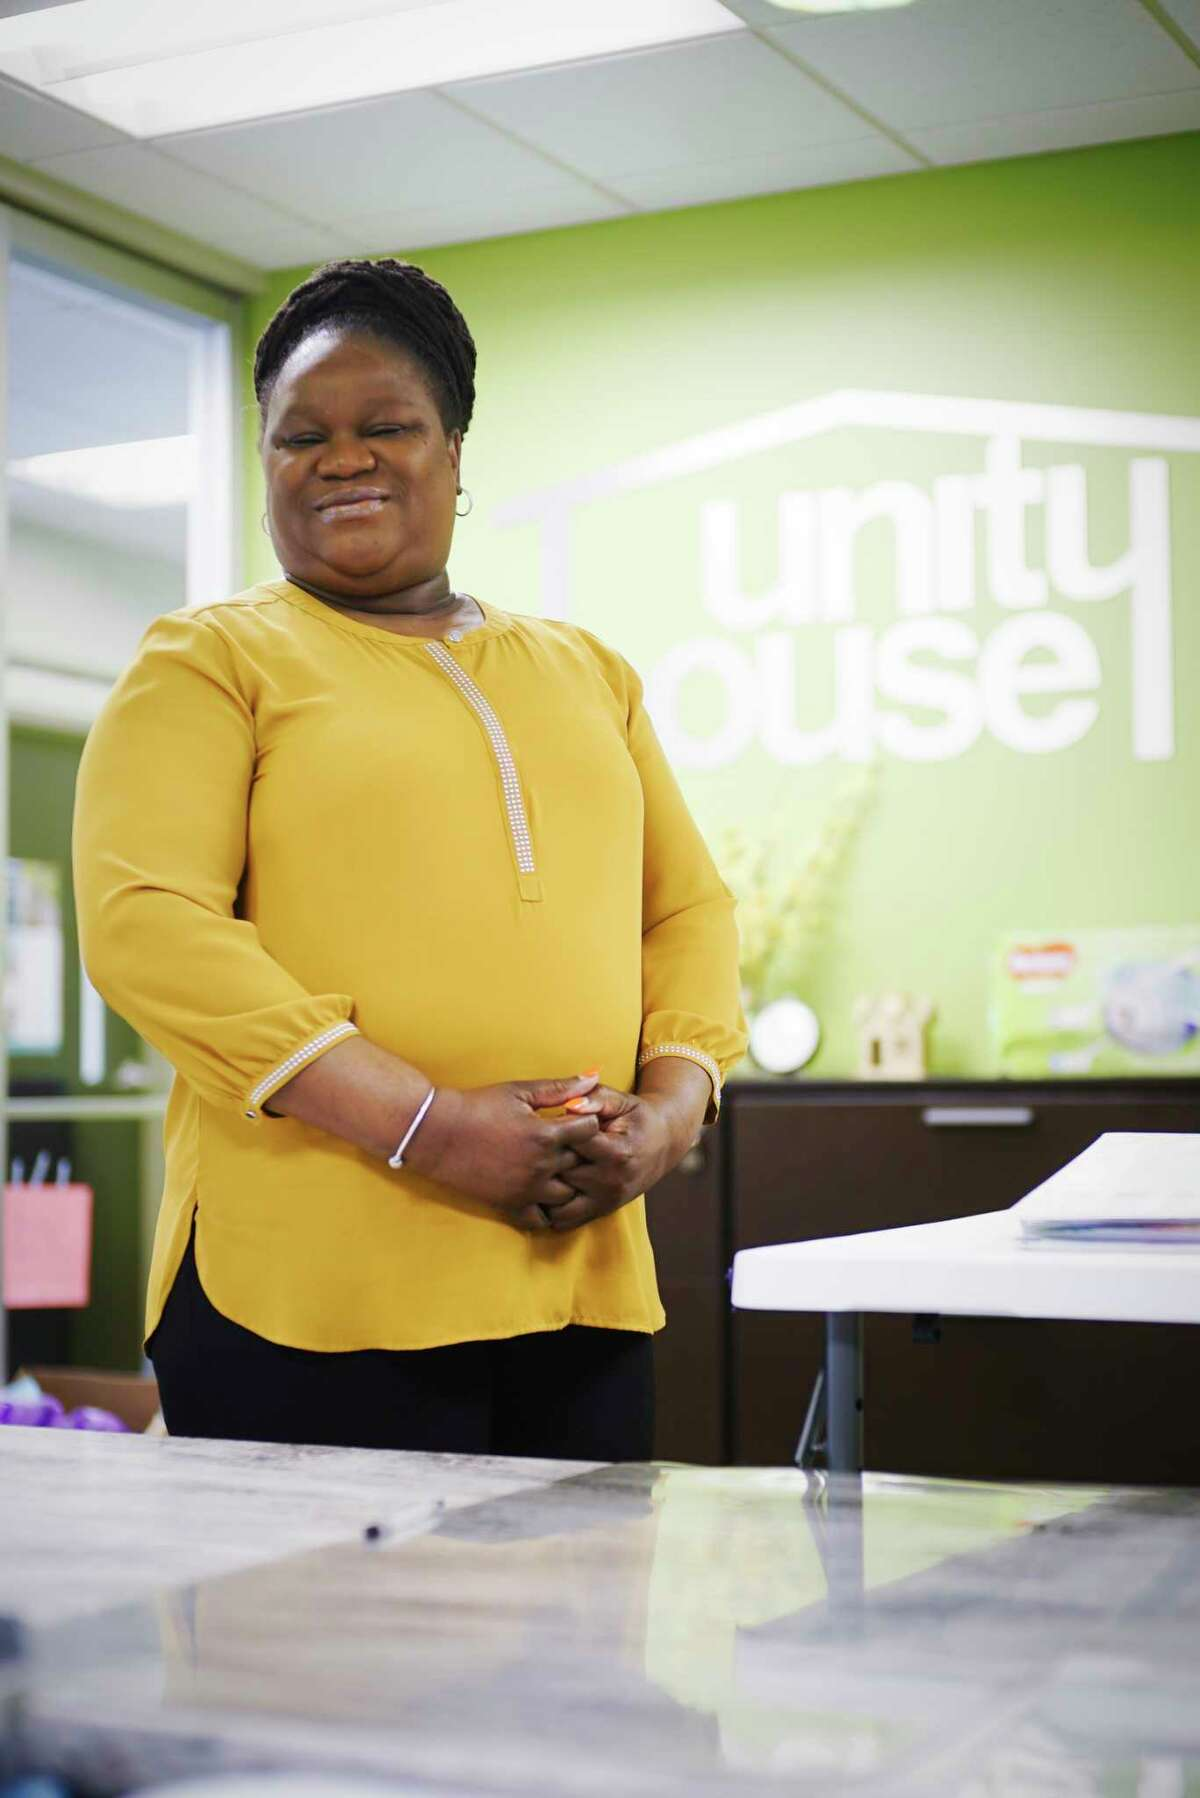 Pauline Glenn, a receptionist at Unity House poses for a photo at the reception desk on Wednesday, April 15, 2020, in Troy, N.Y. (Paul Buckowski/Times Union)